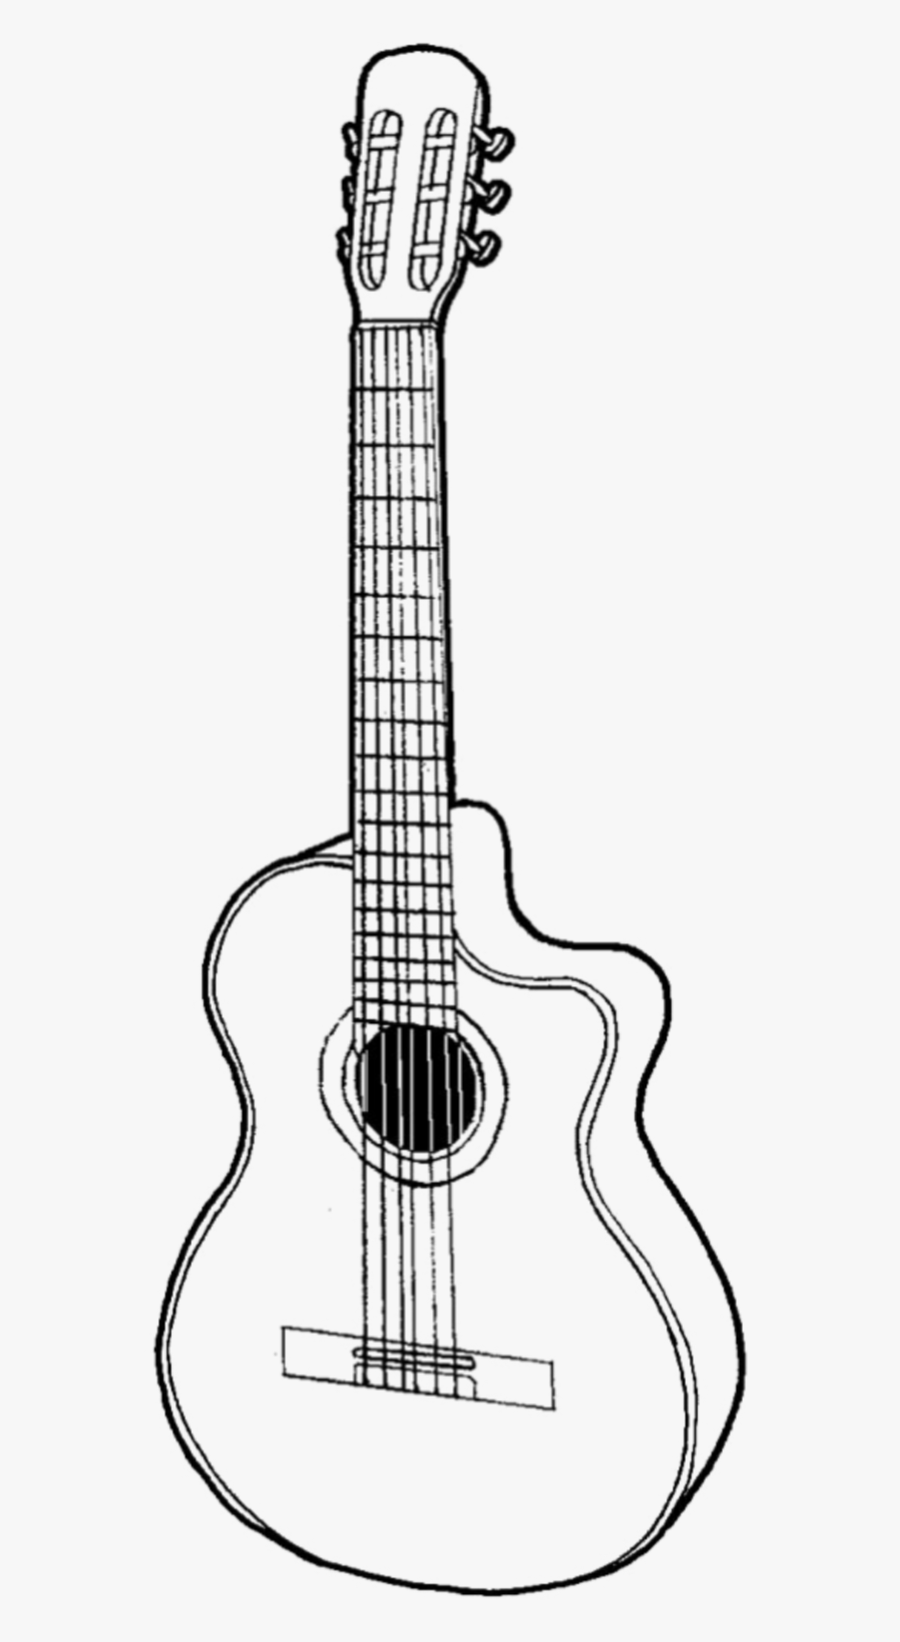 Guitar Draw Drawing Scrapbook Scrapbooking Design Guitar Pencil Drawings Free Transparent Clipart Clipartkey